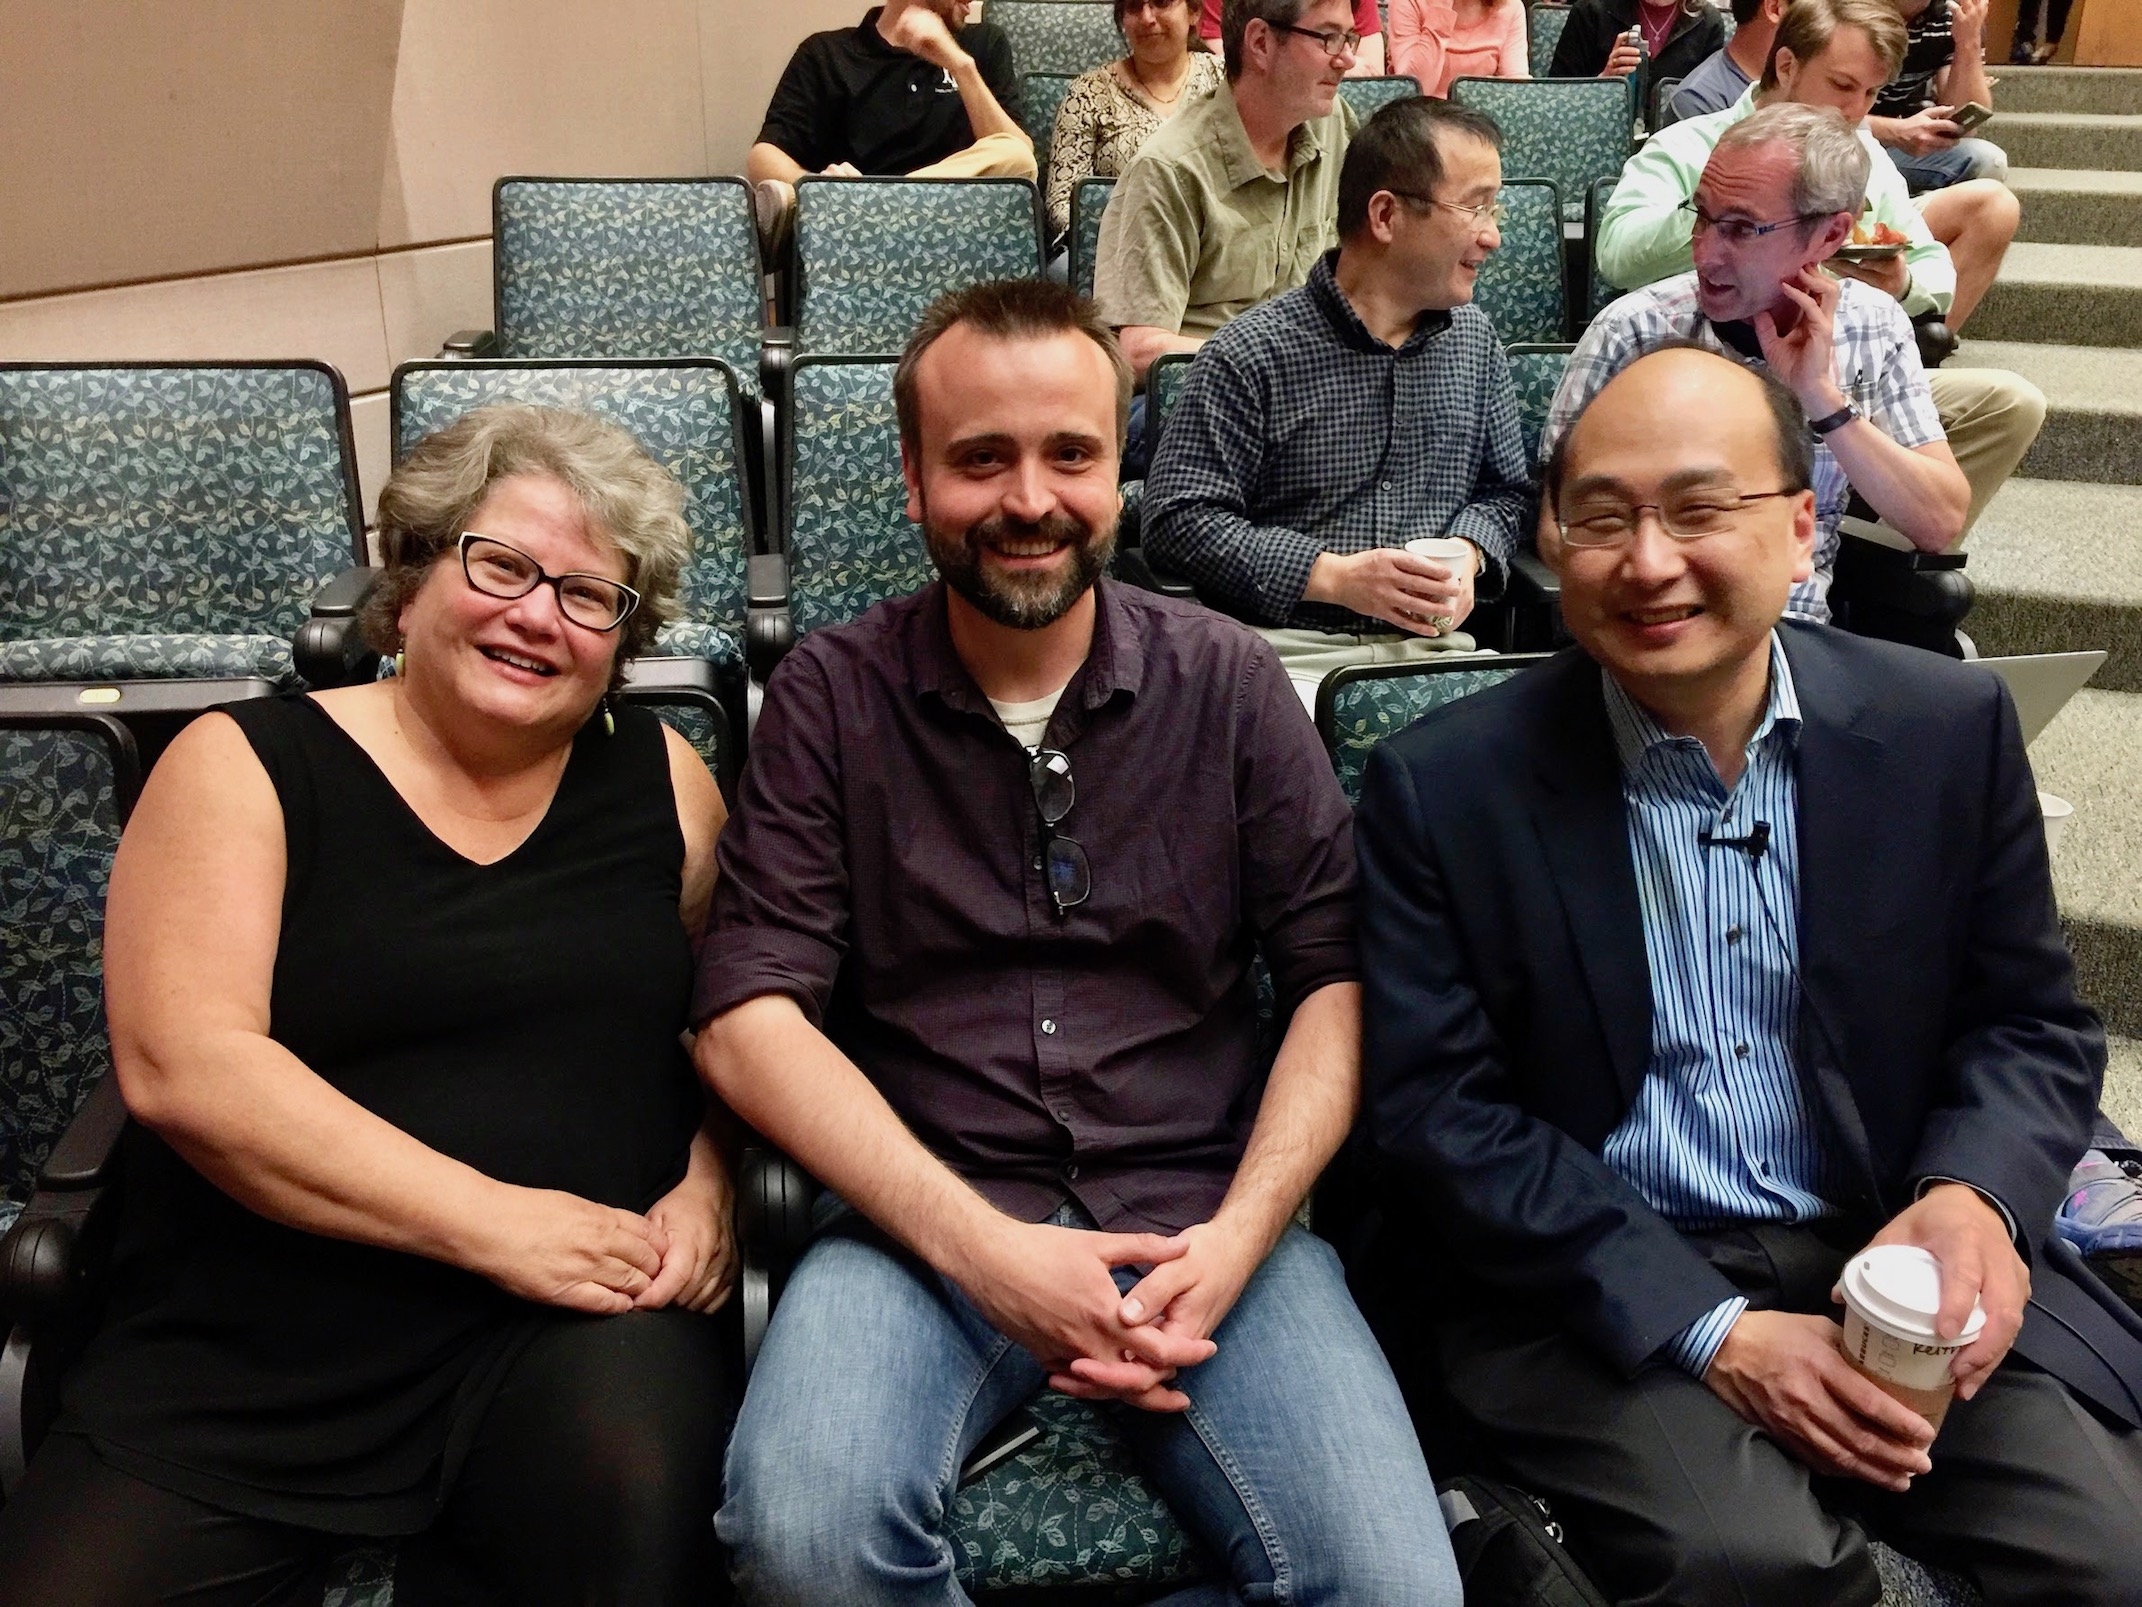 Drena Dobbs, Jeff Sander, Keith Joung in Iowa State lecture hall.